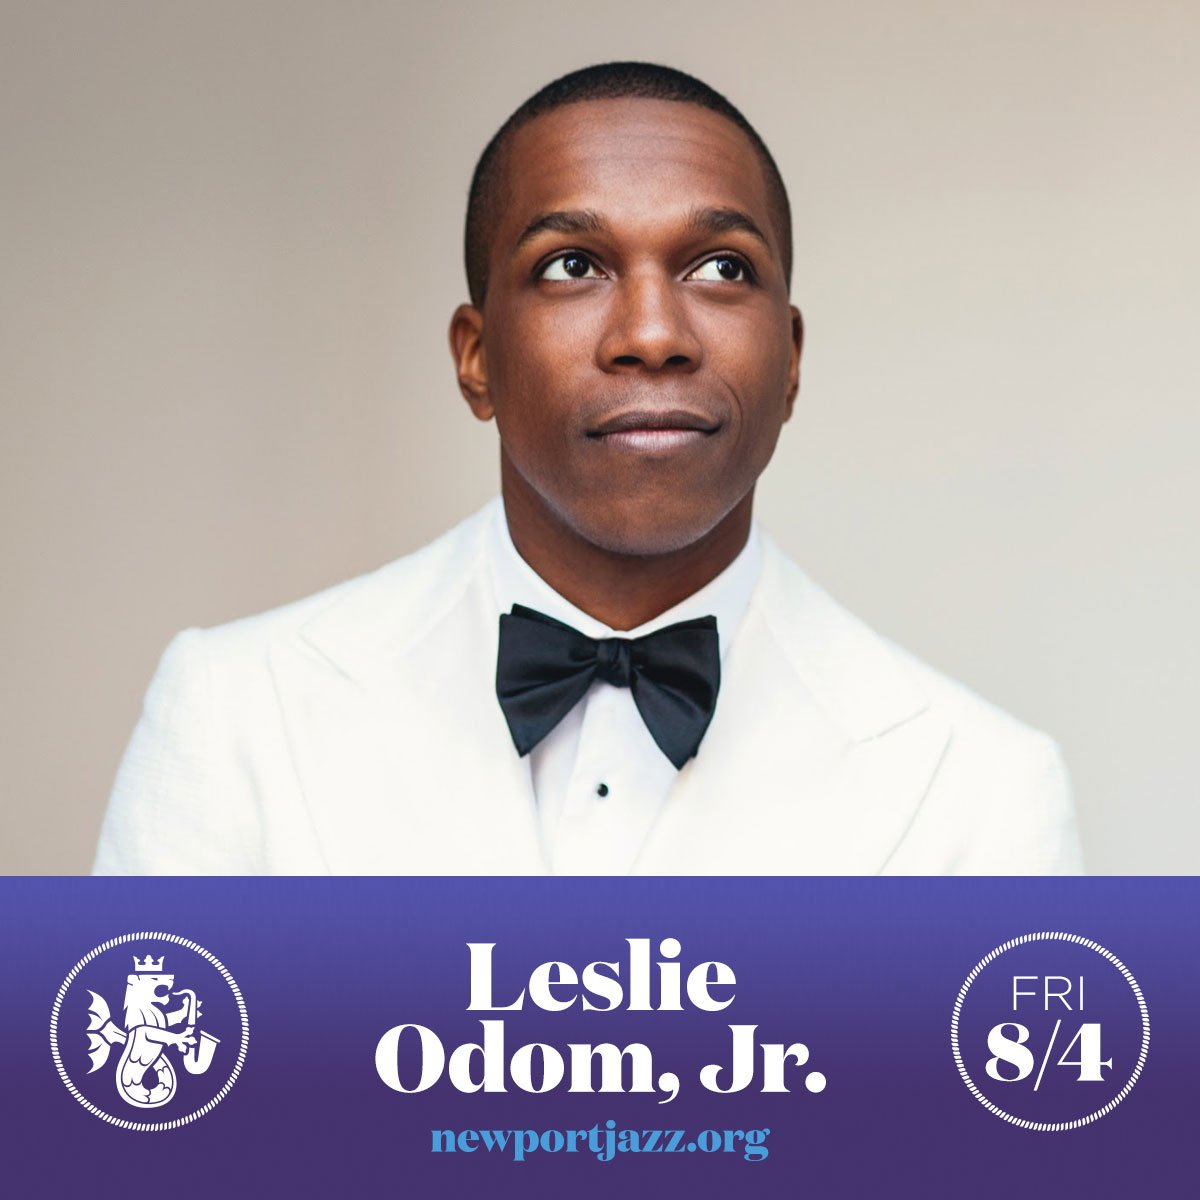 Please welcome @leslieodomjr to our 2017 Friday lineup. #newportjazz #jazzfamily https://t.co/R5DIydzkIp